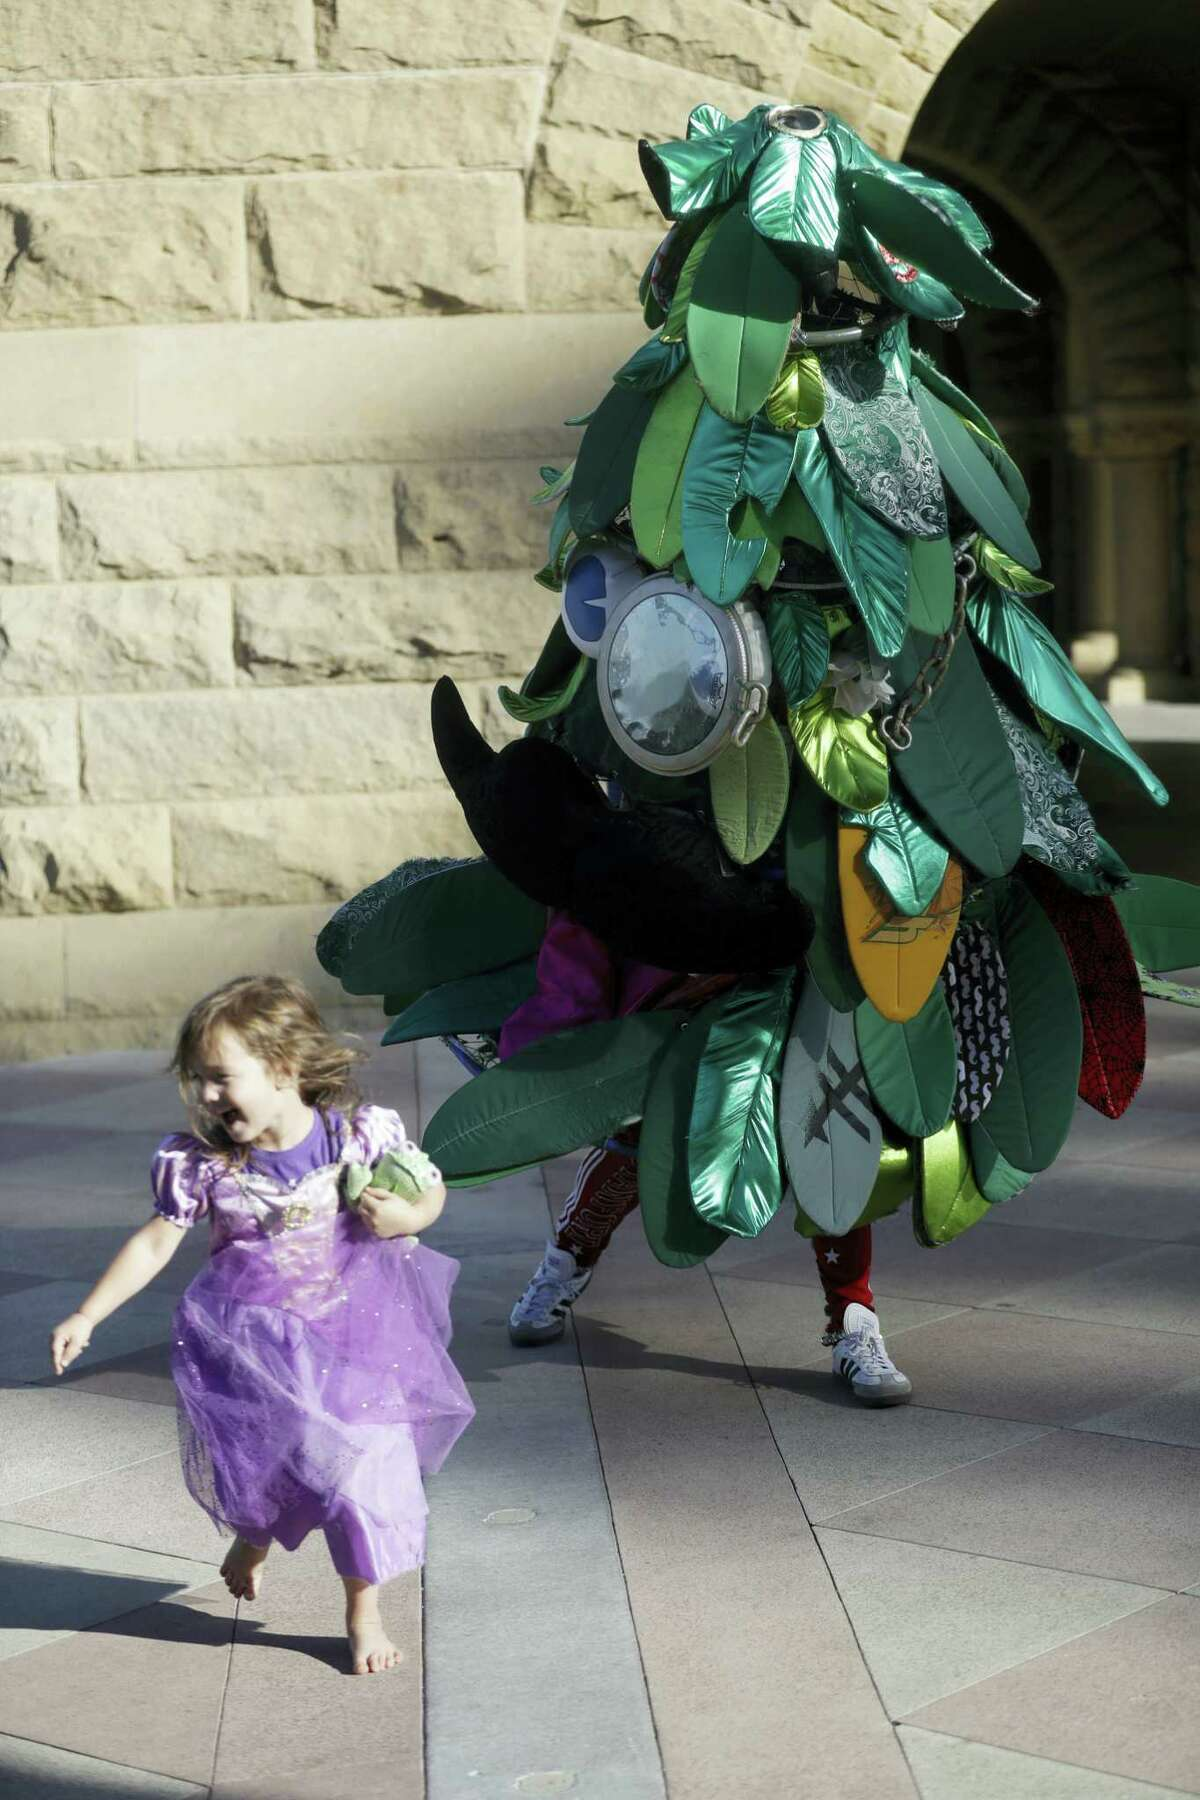 Stanford University student Sam Weyen, who portrays the Stanford Tree, the school's mascot, jokes with a young visitor.